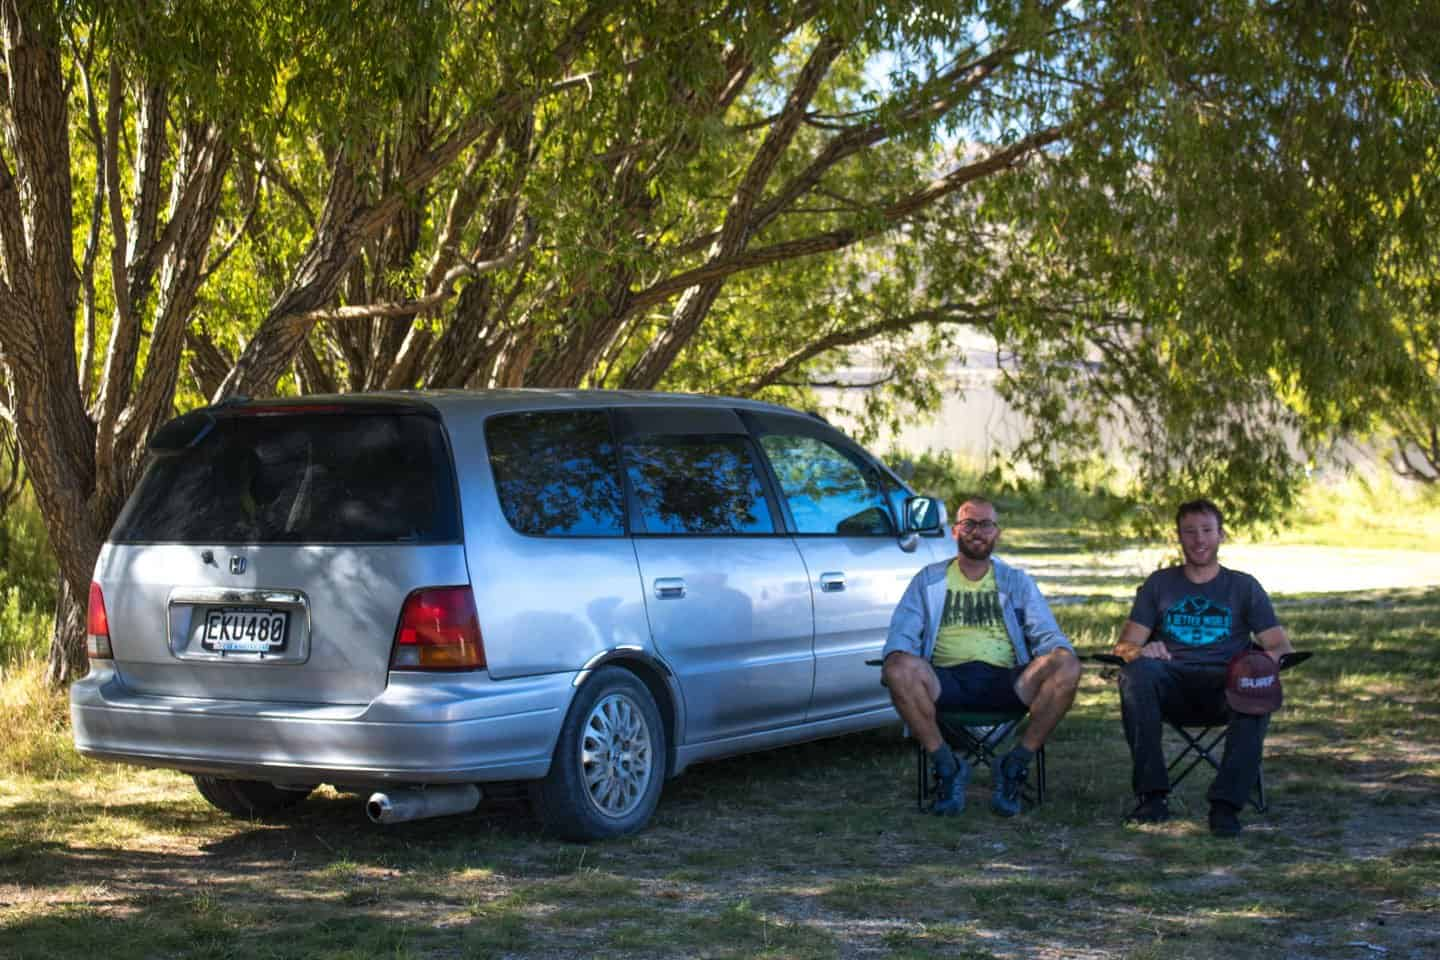 Ridesharing is a great way to travel New Zealand by campervan for solo travelers.